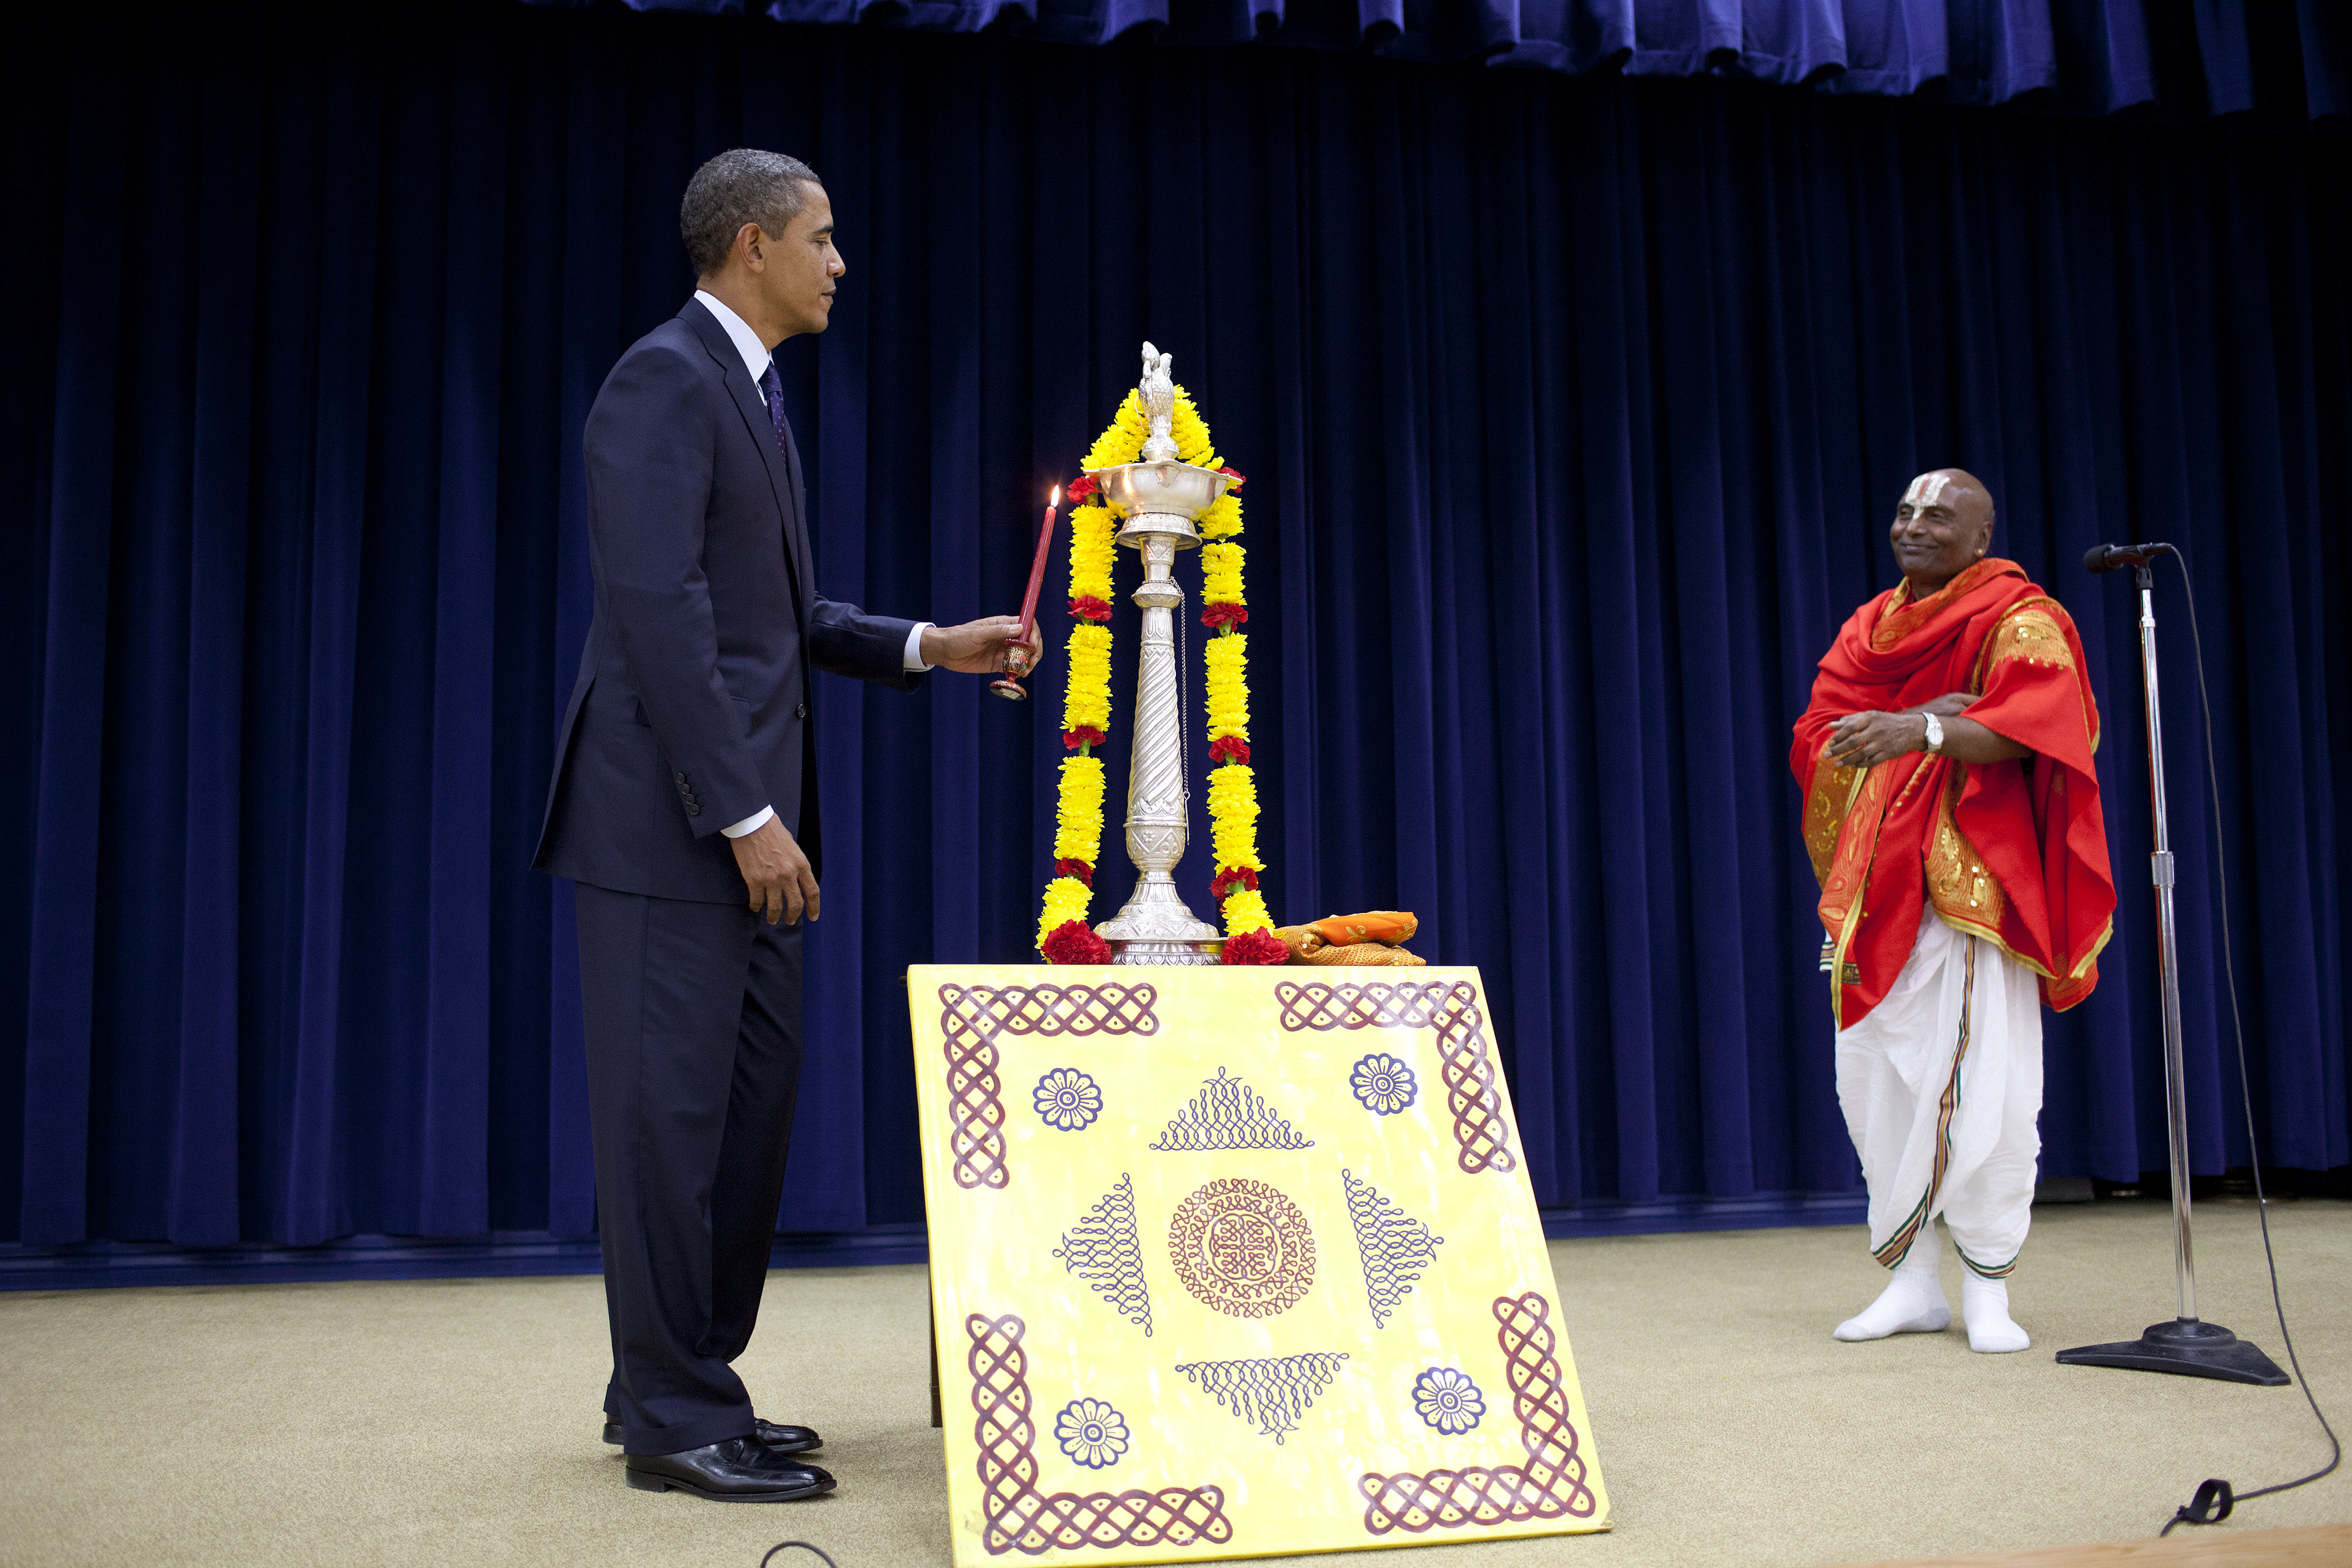 Diwali at the White House